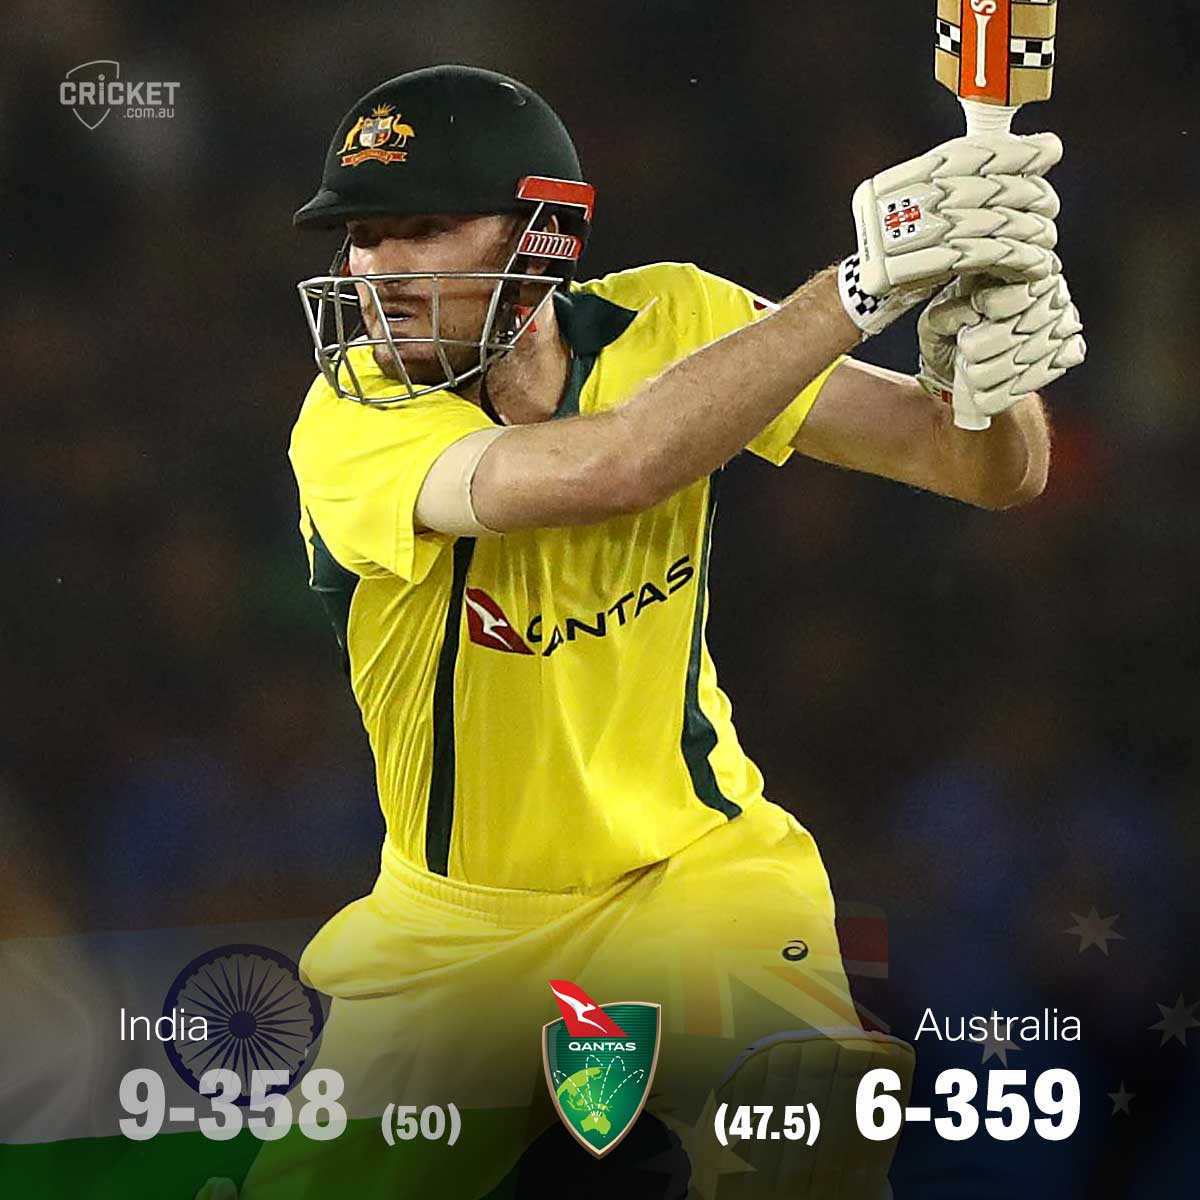 AUSTRALIA WIN! Ashton Turner take a bow. The series is tied, we have a decider on Wednesday! #INDvAUS